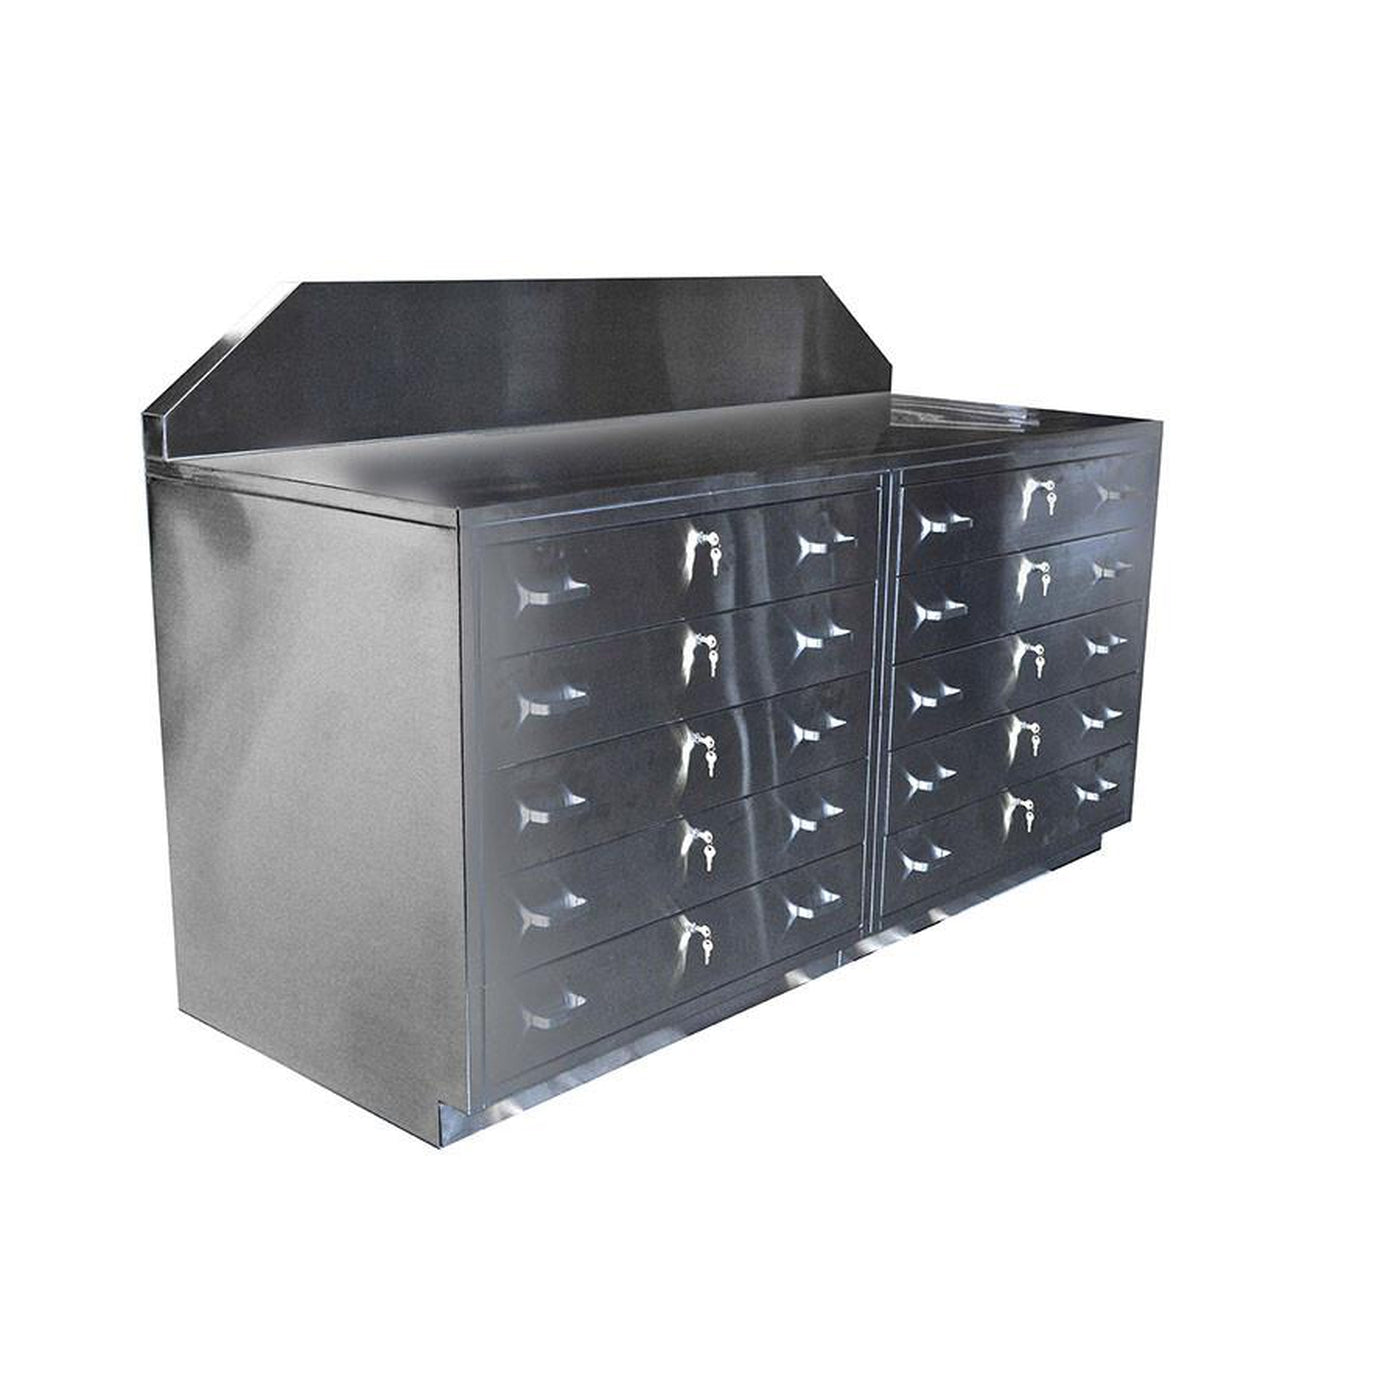 Ventilated Storage Base Cabinets-Sink Station-Mortech Manufacturing Company Inc. Quality Stainless Steel Autopsy, Morgue, Funeral Home, Necropsy, Veterinary / Anatomy, Dissection Equipment and Accessories